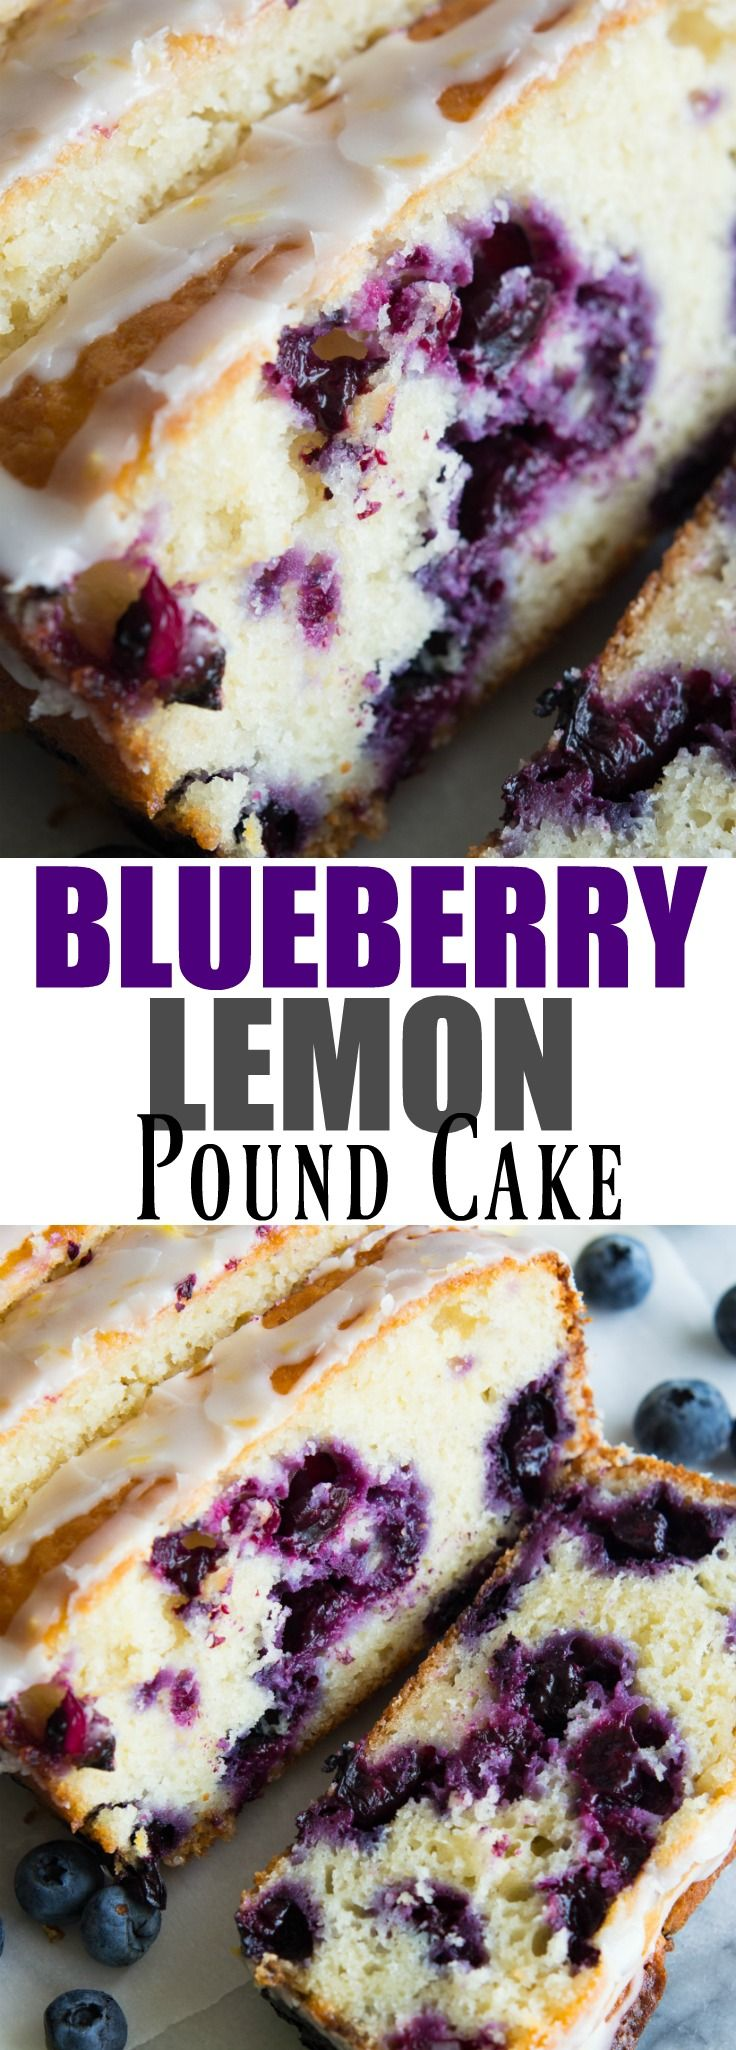 Blueberry Lemon Pound Cake!  This pound cake is made lighter by using greek yogurt, and is loaded up with lemon flavor thanks to zest and fresh lemon juice!  Juicy blueberries are baked right in.  All drizzled with a luscious lemon glaze.